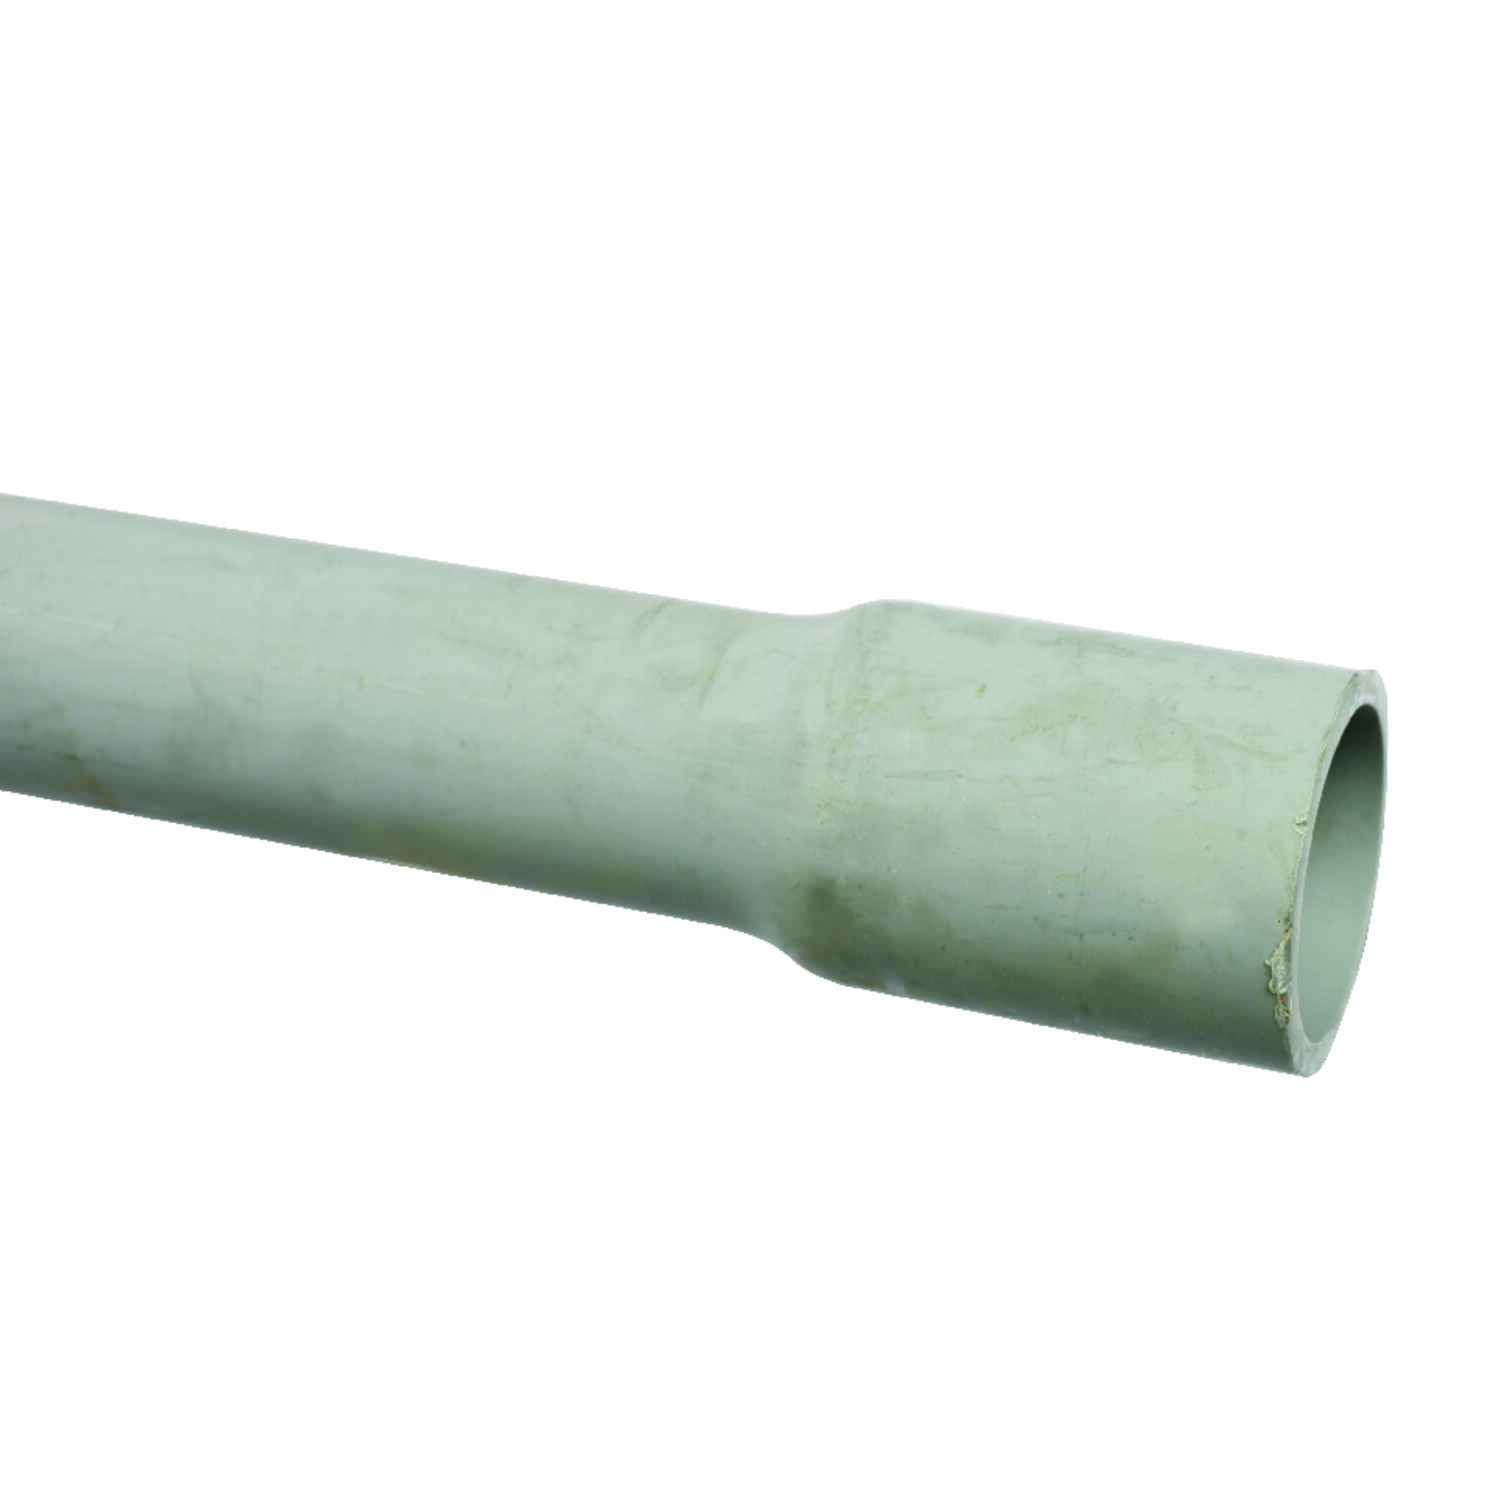 Cantex  1/2 in. Dia. x 10 ft. L PVC  Electrical Conduit  For Rigid